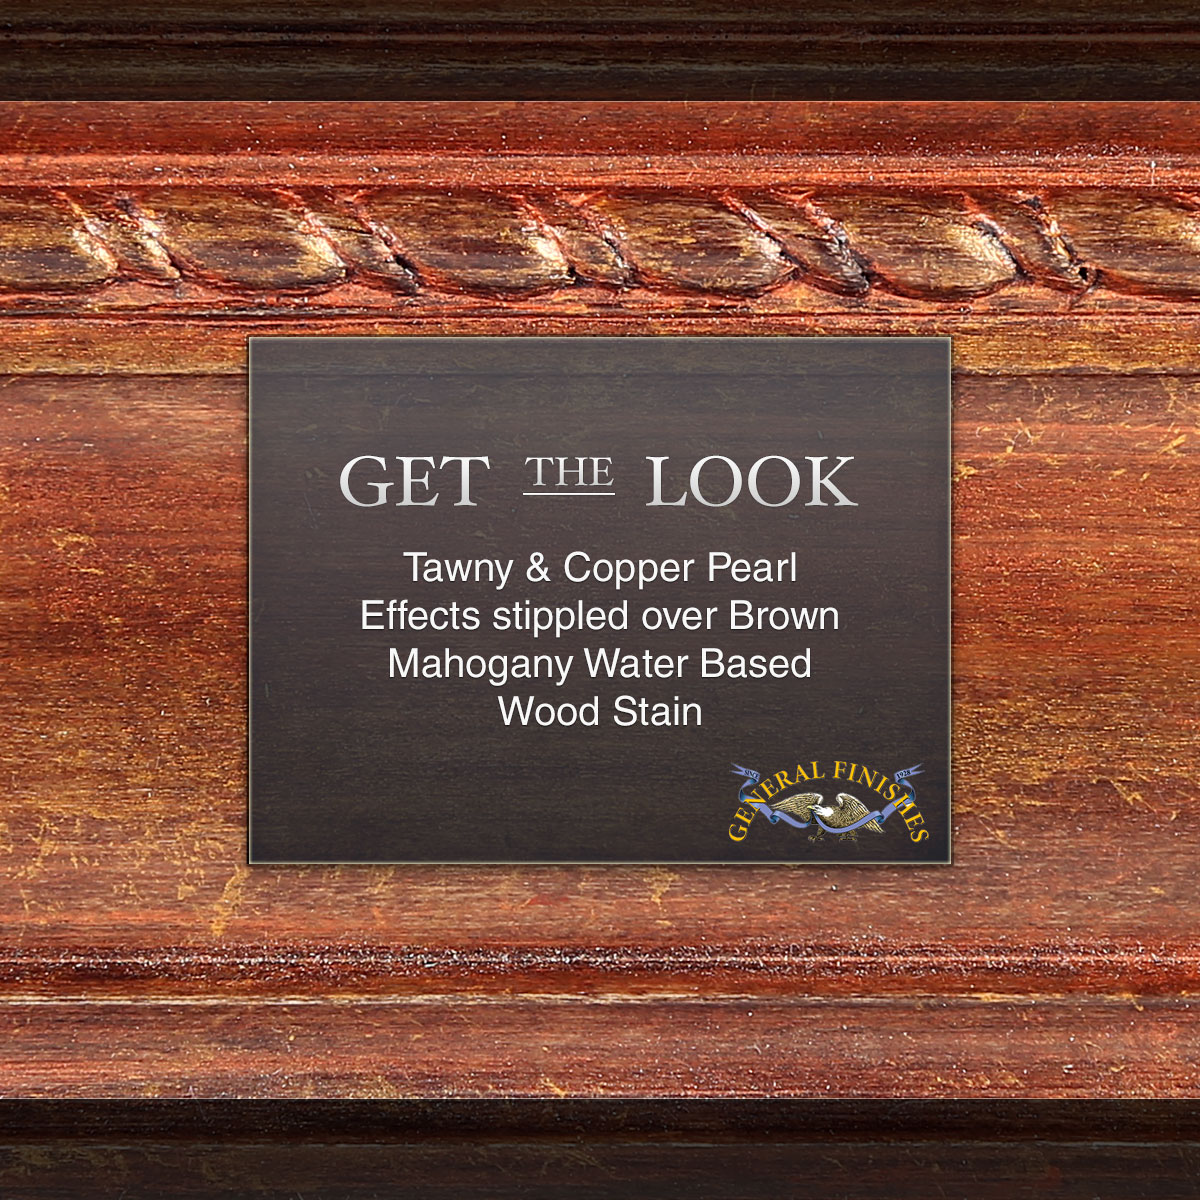 Water based wood stains general finishes get the look copper and tawny pearl effects over brown mahogany water based stain nvjuhfo Image collections